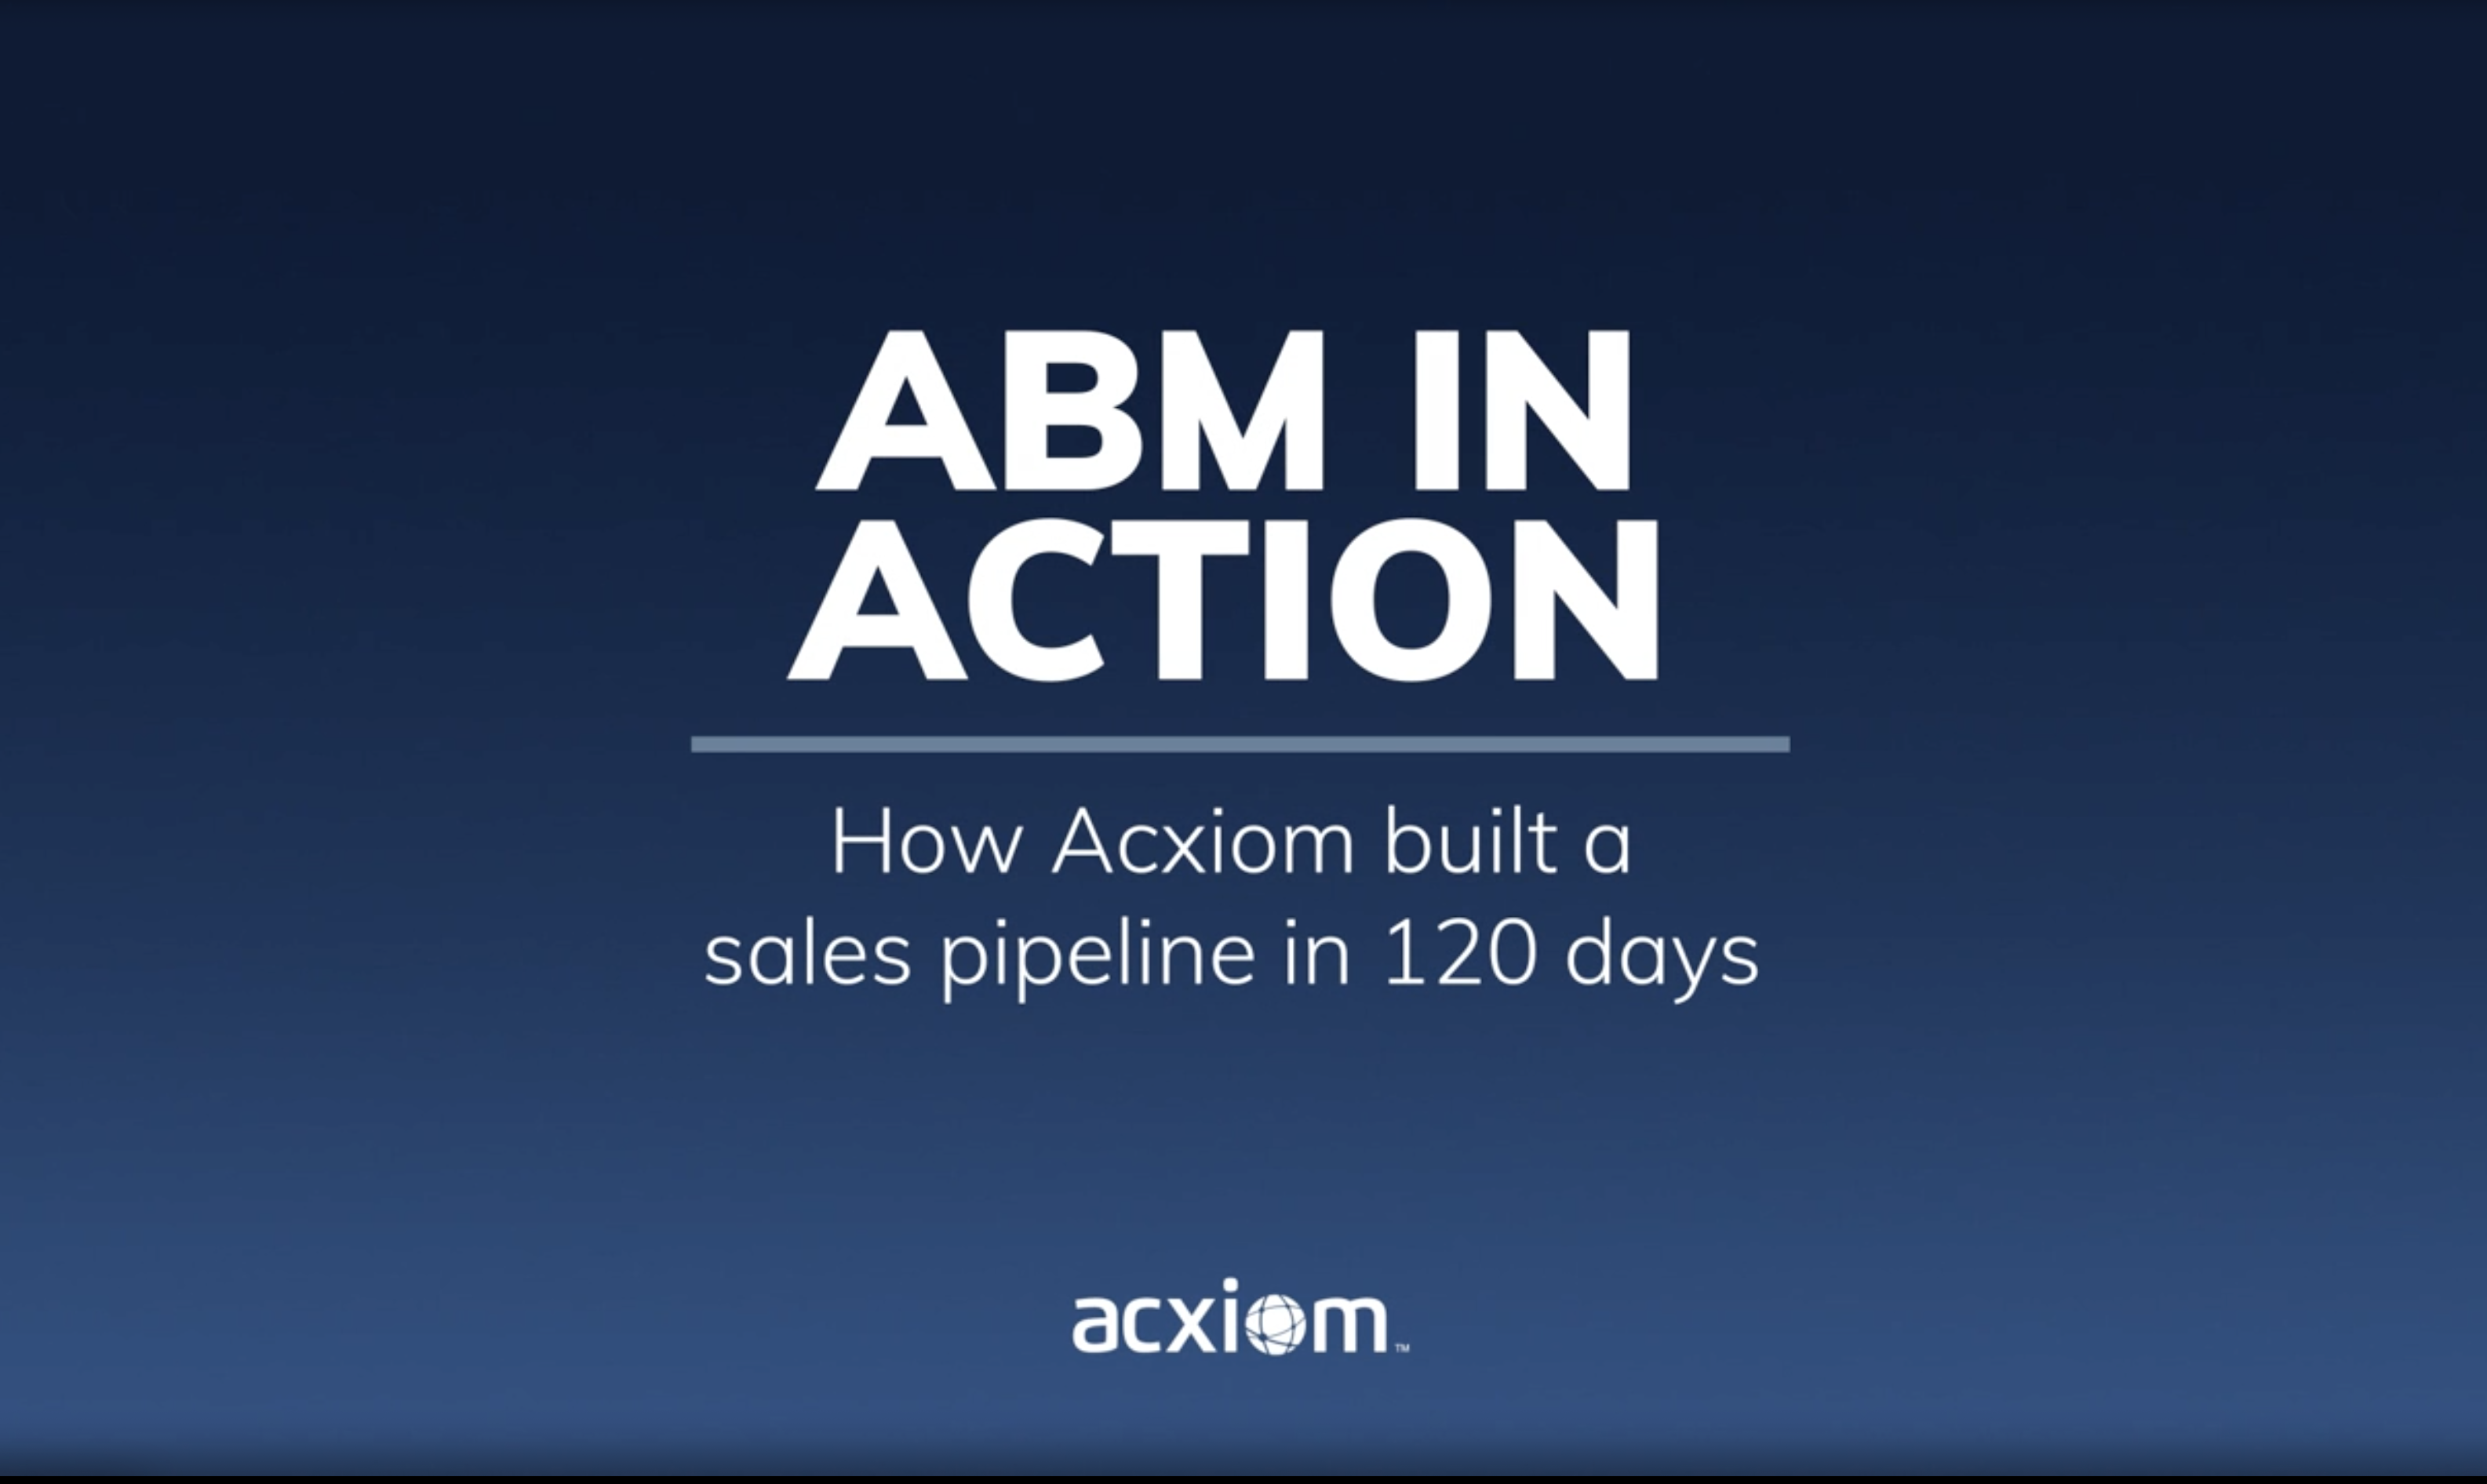 ABM in Action: Watch How Acxiom Created a £1.5m Pipeline in 120 Days